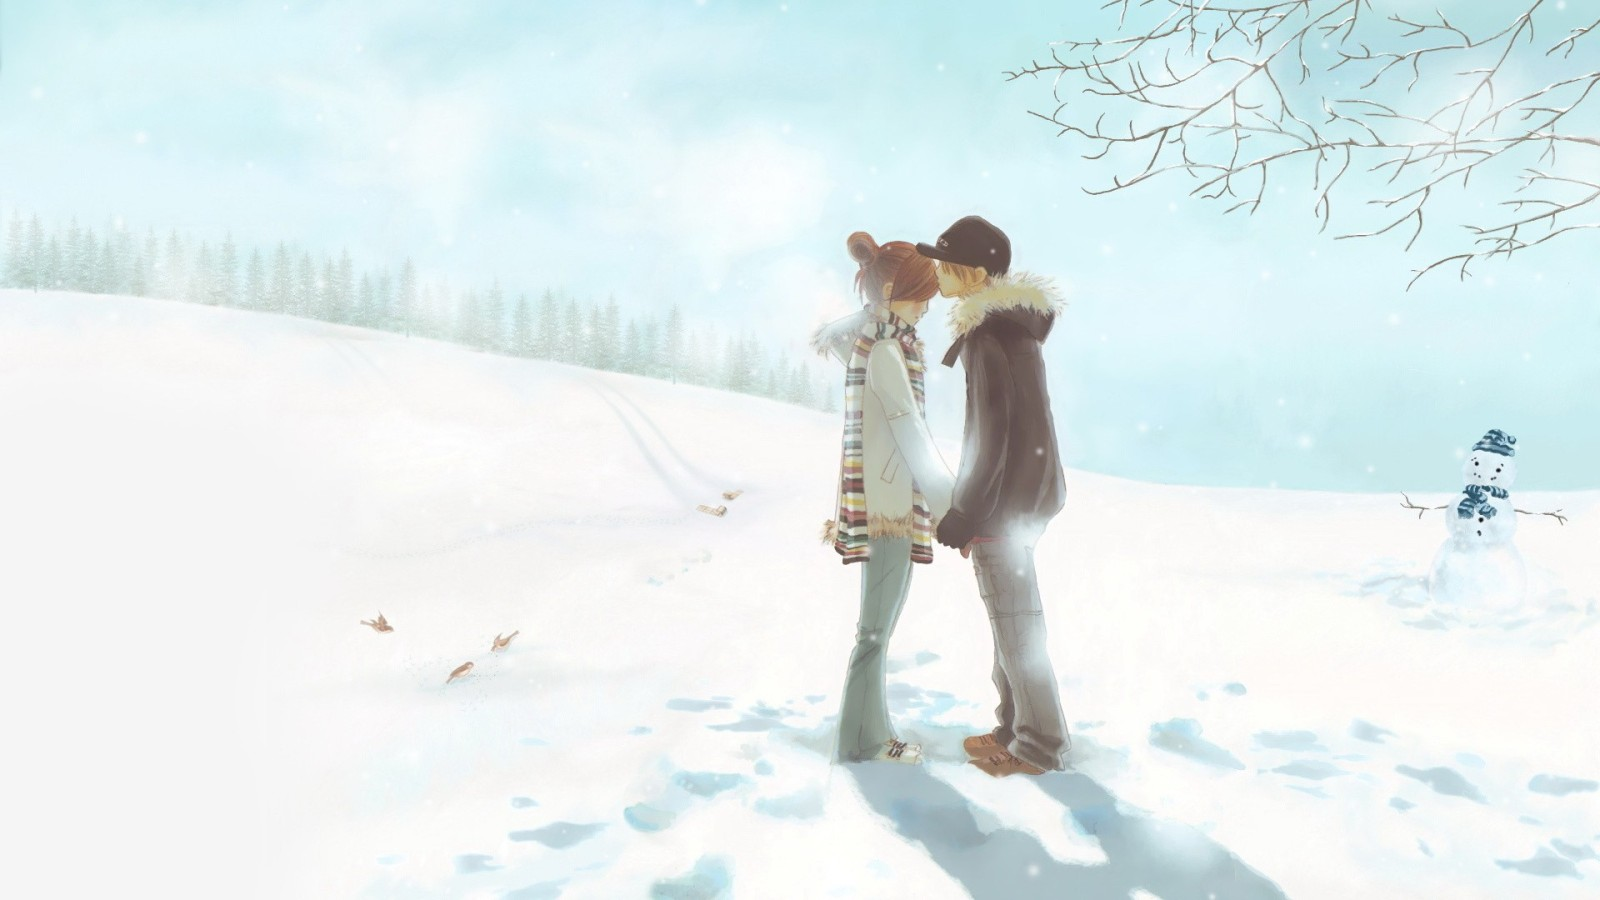 Cute Anime Winter Wallpaper